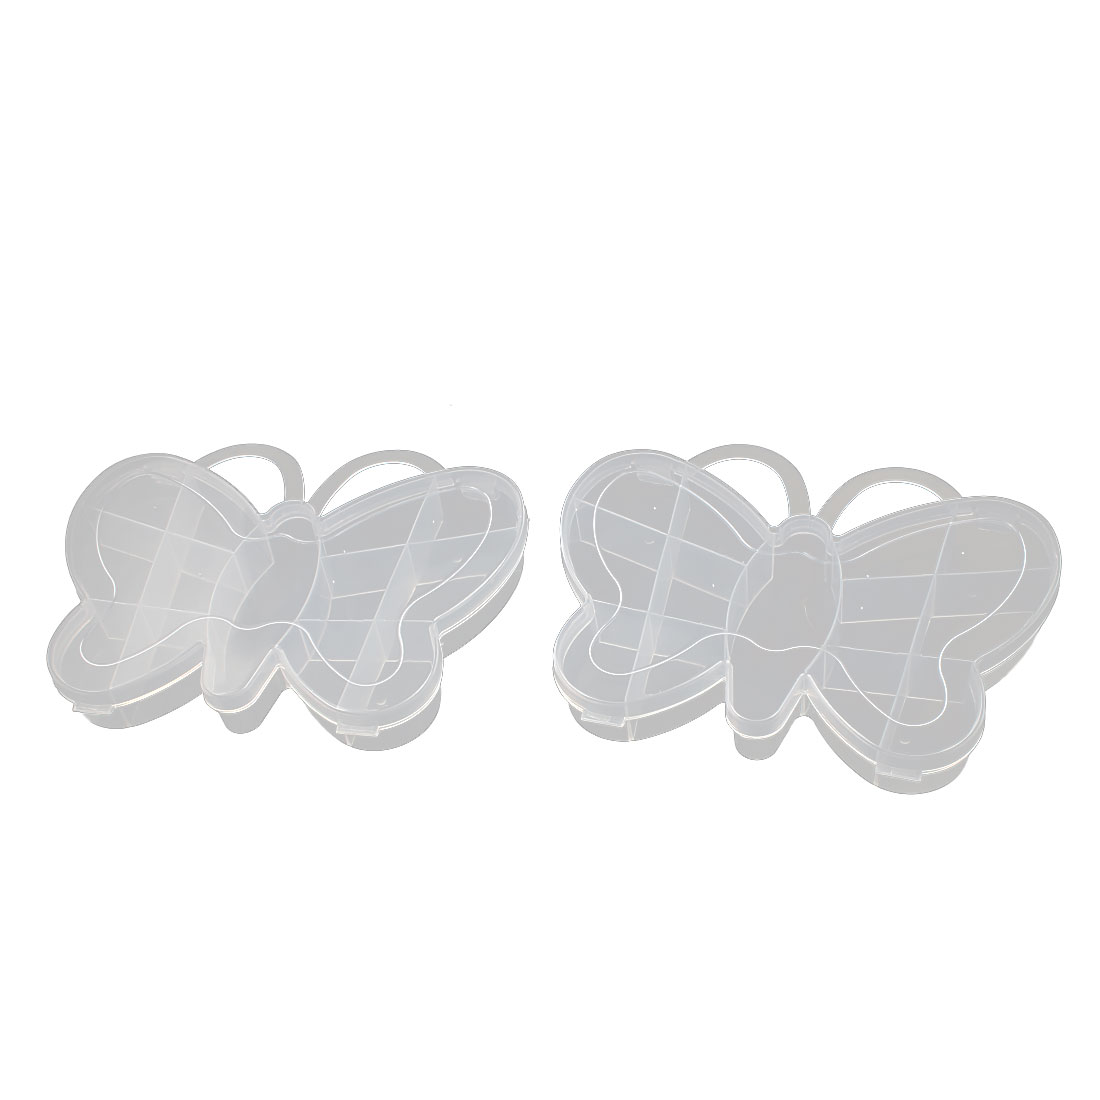 Jewelry Bead Pill Collection Makeup Butterfly Shape Storage Box Case Clear 2pcs